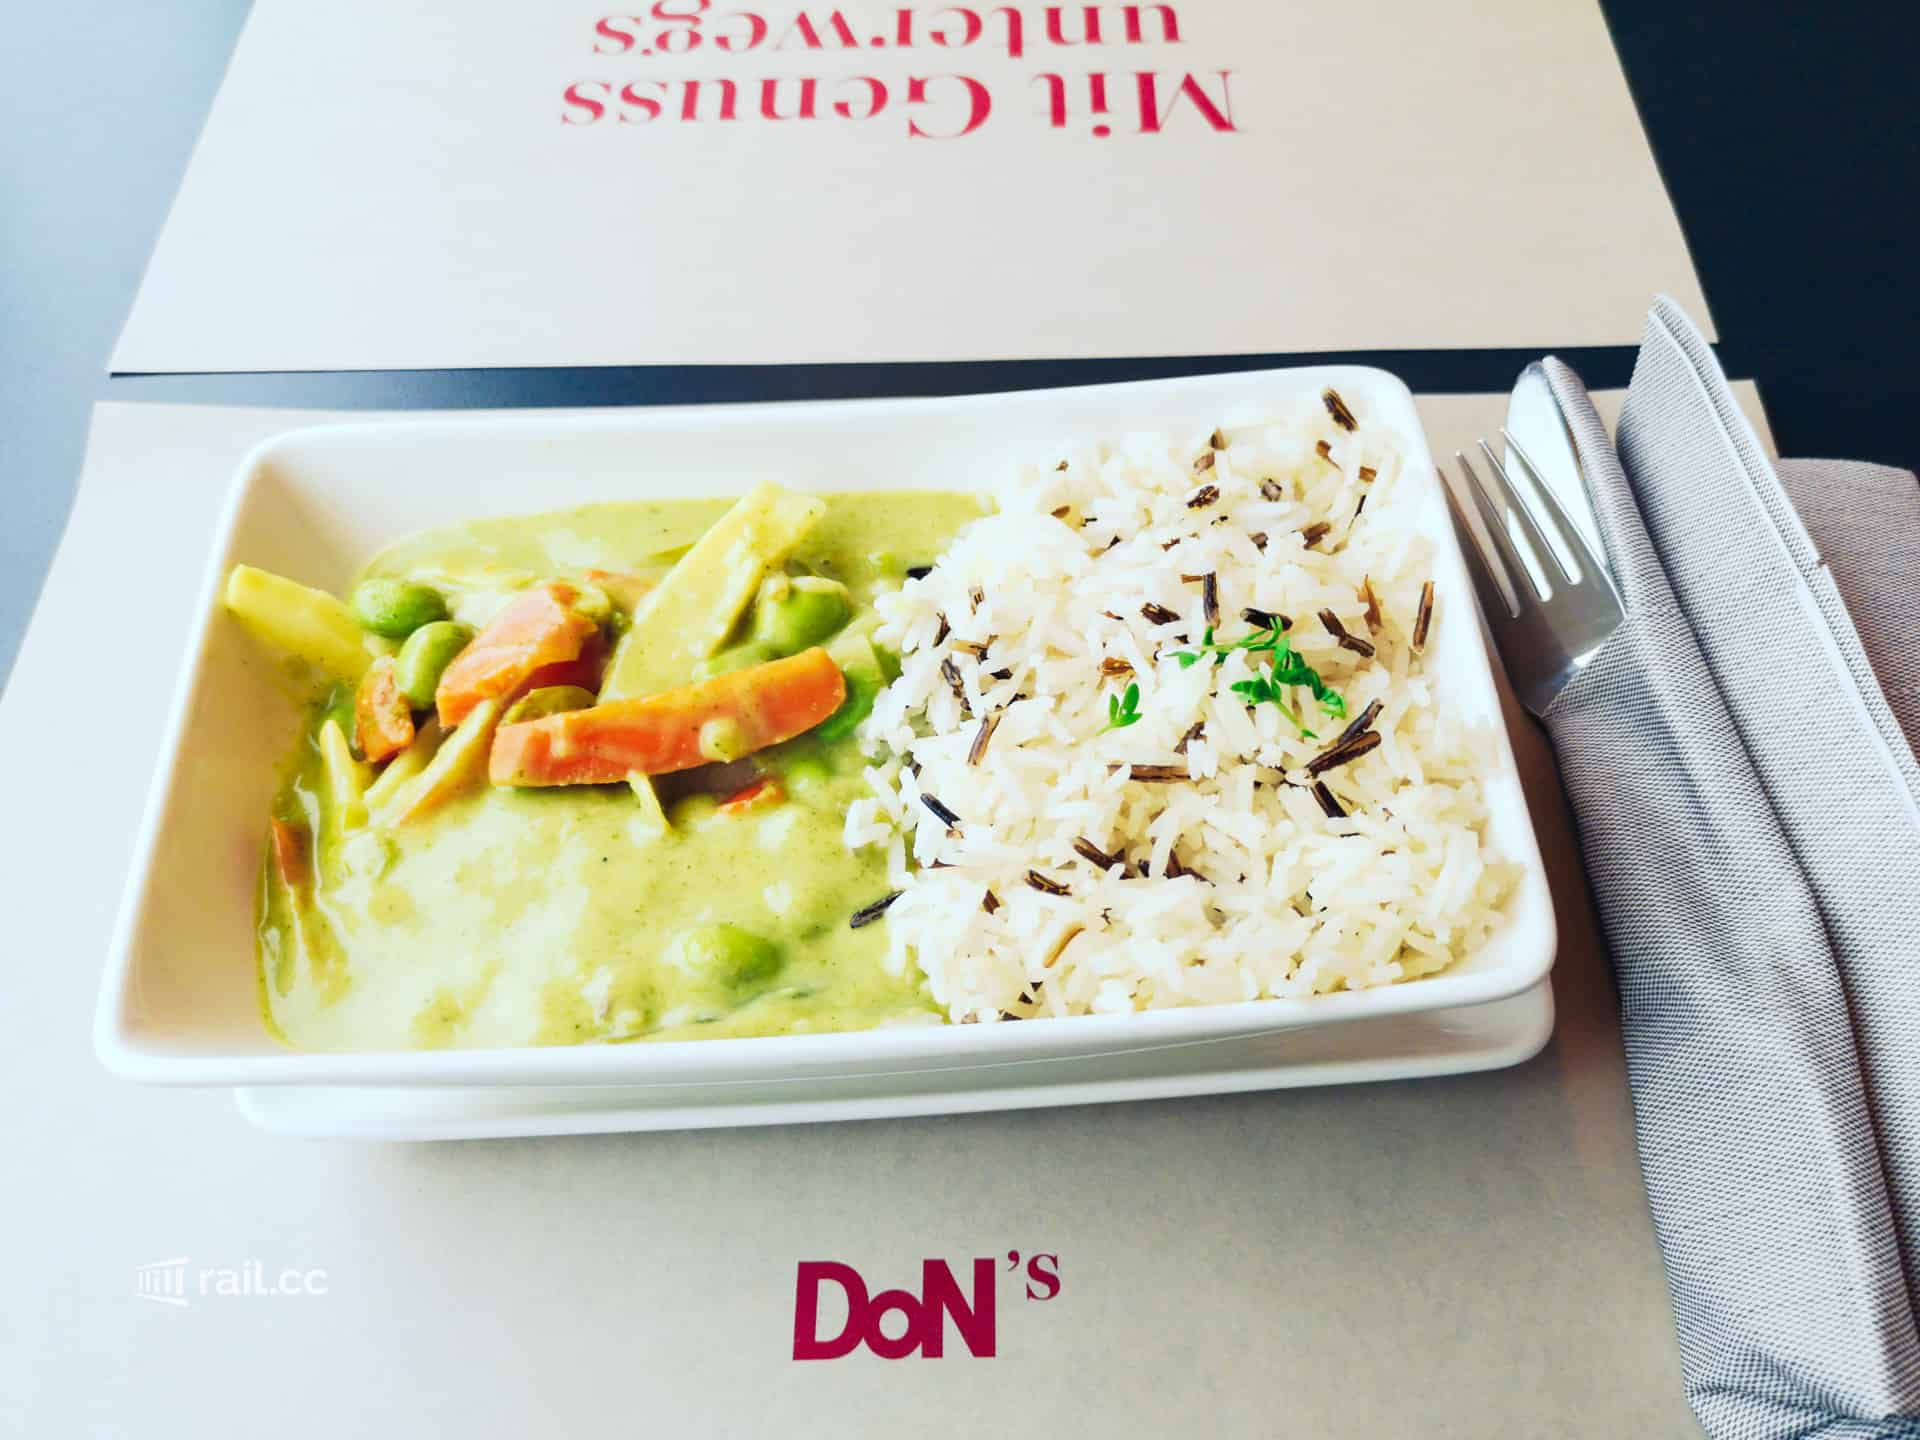 Railjet lunch in the restaurant car: green curry